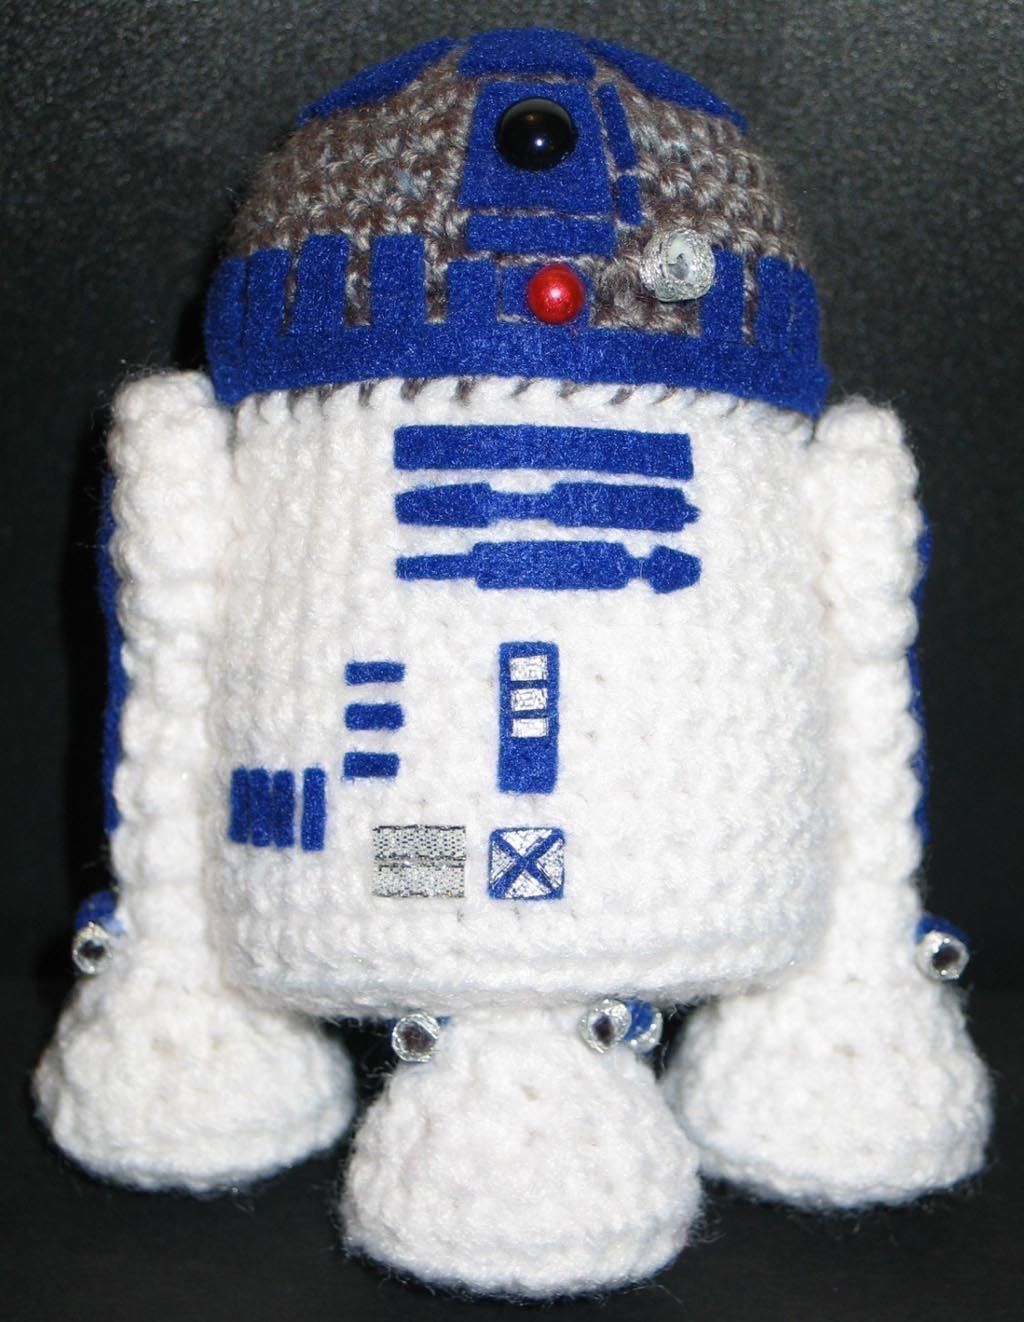 Make your own star wars r2 d2 amigurumi amigurumi patterns free star wars amigurumi pattern by janama on etsy bankloansurffo Images